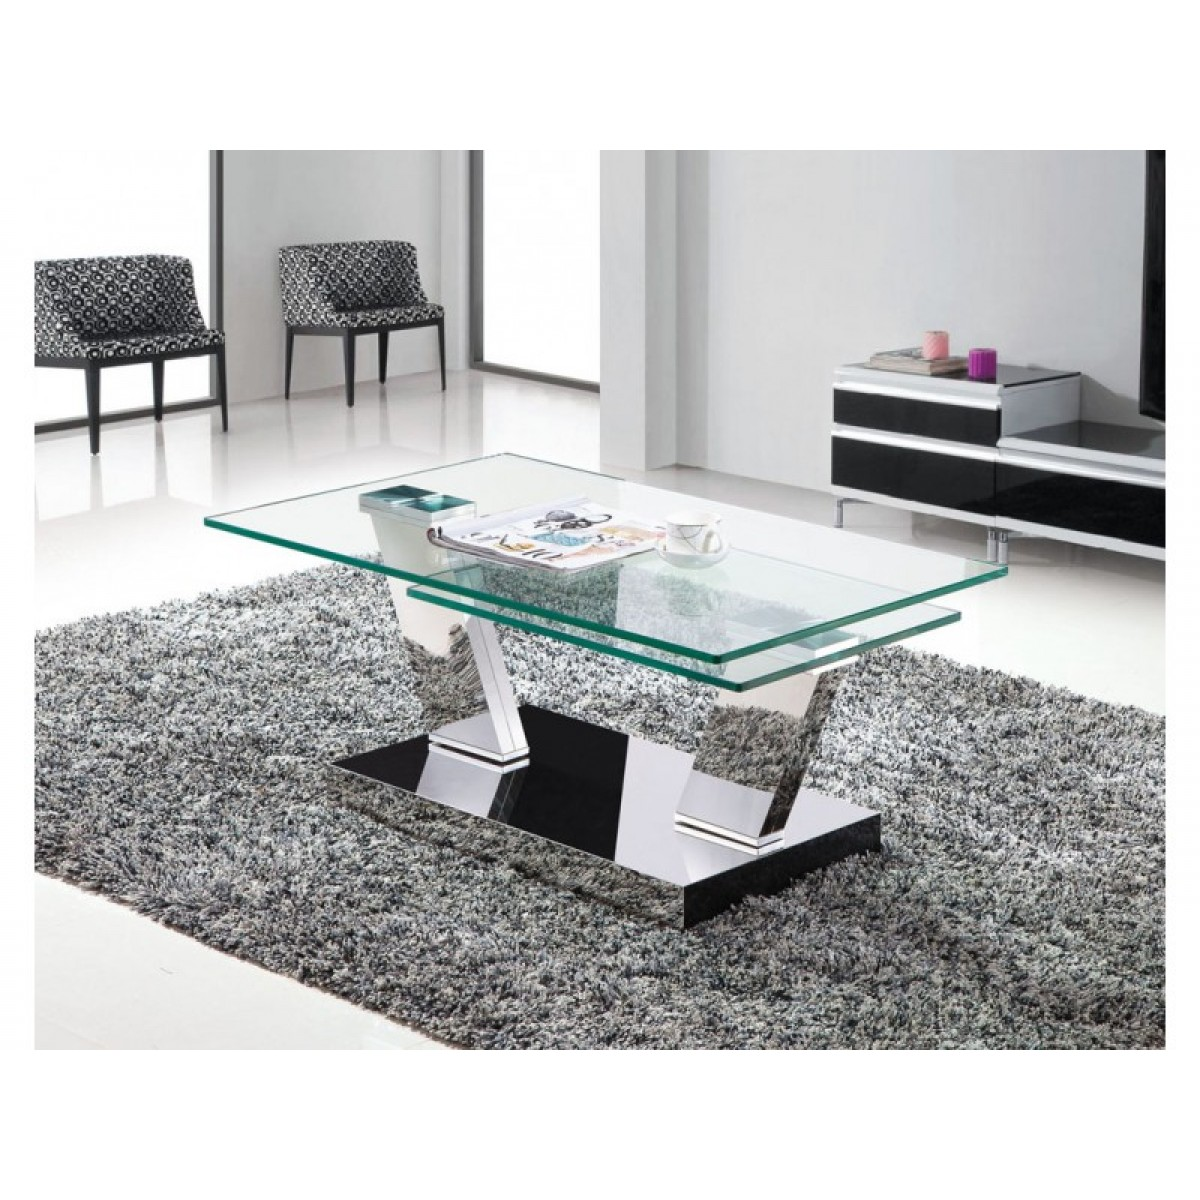 Table a manger dimension vansity Dimension table a manger